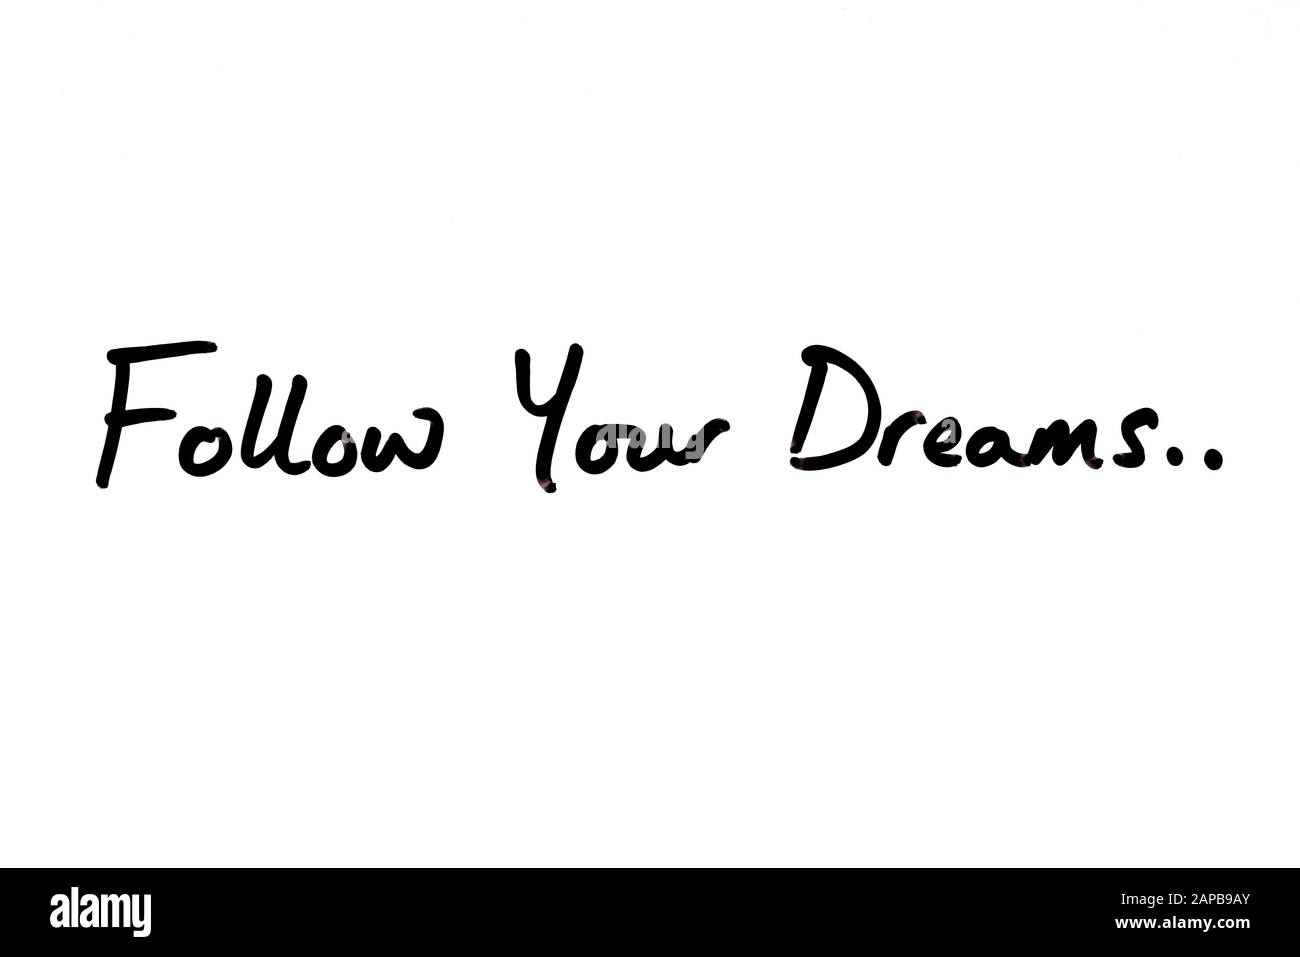 Follow Your Dreams.. handwritten on a white background. Stock Photo